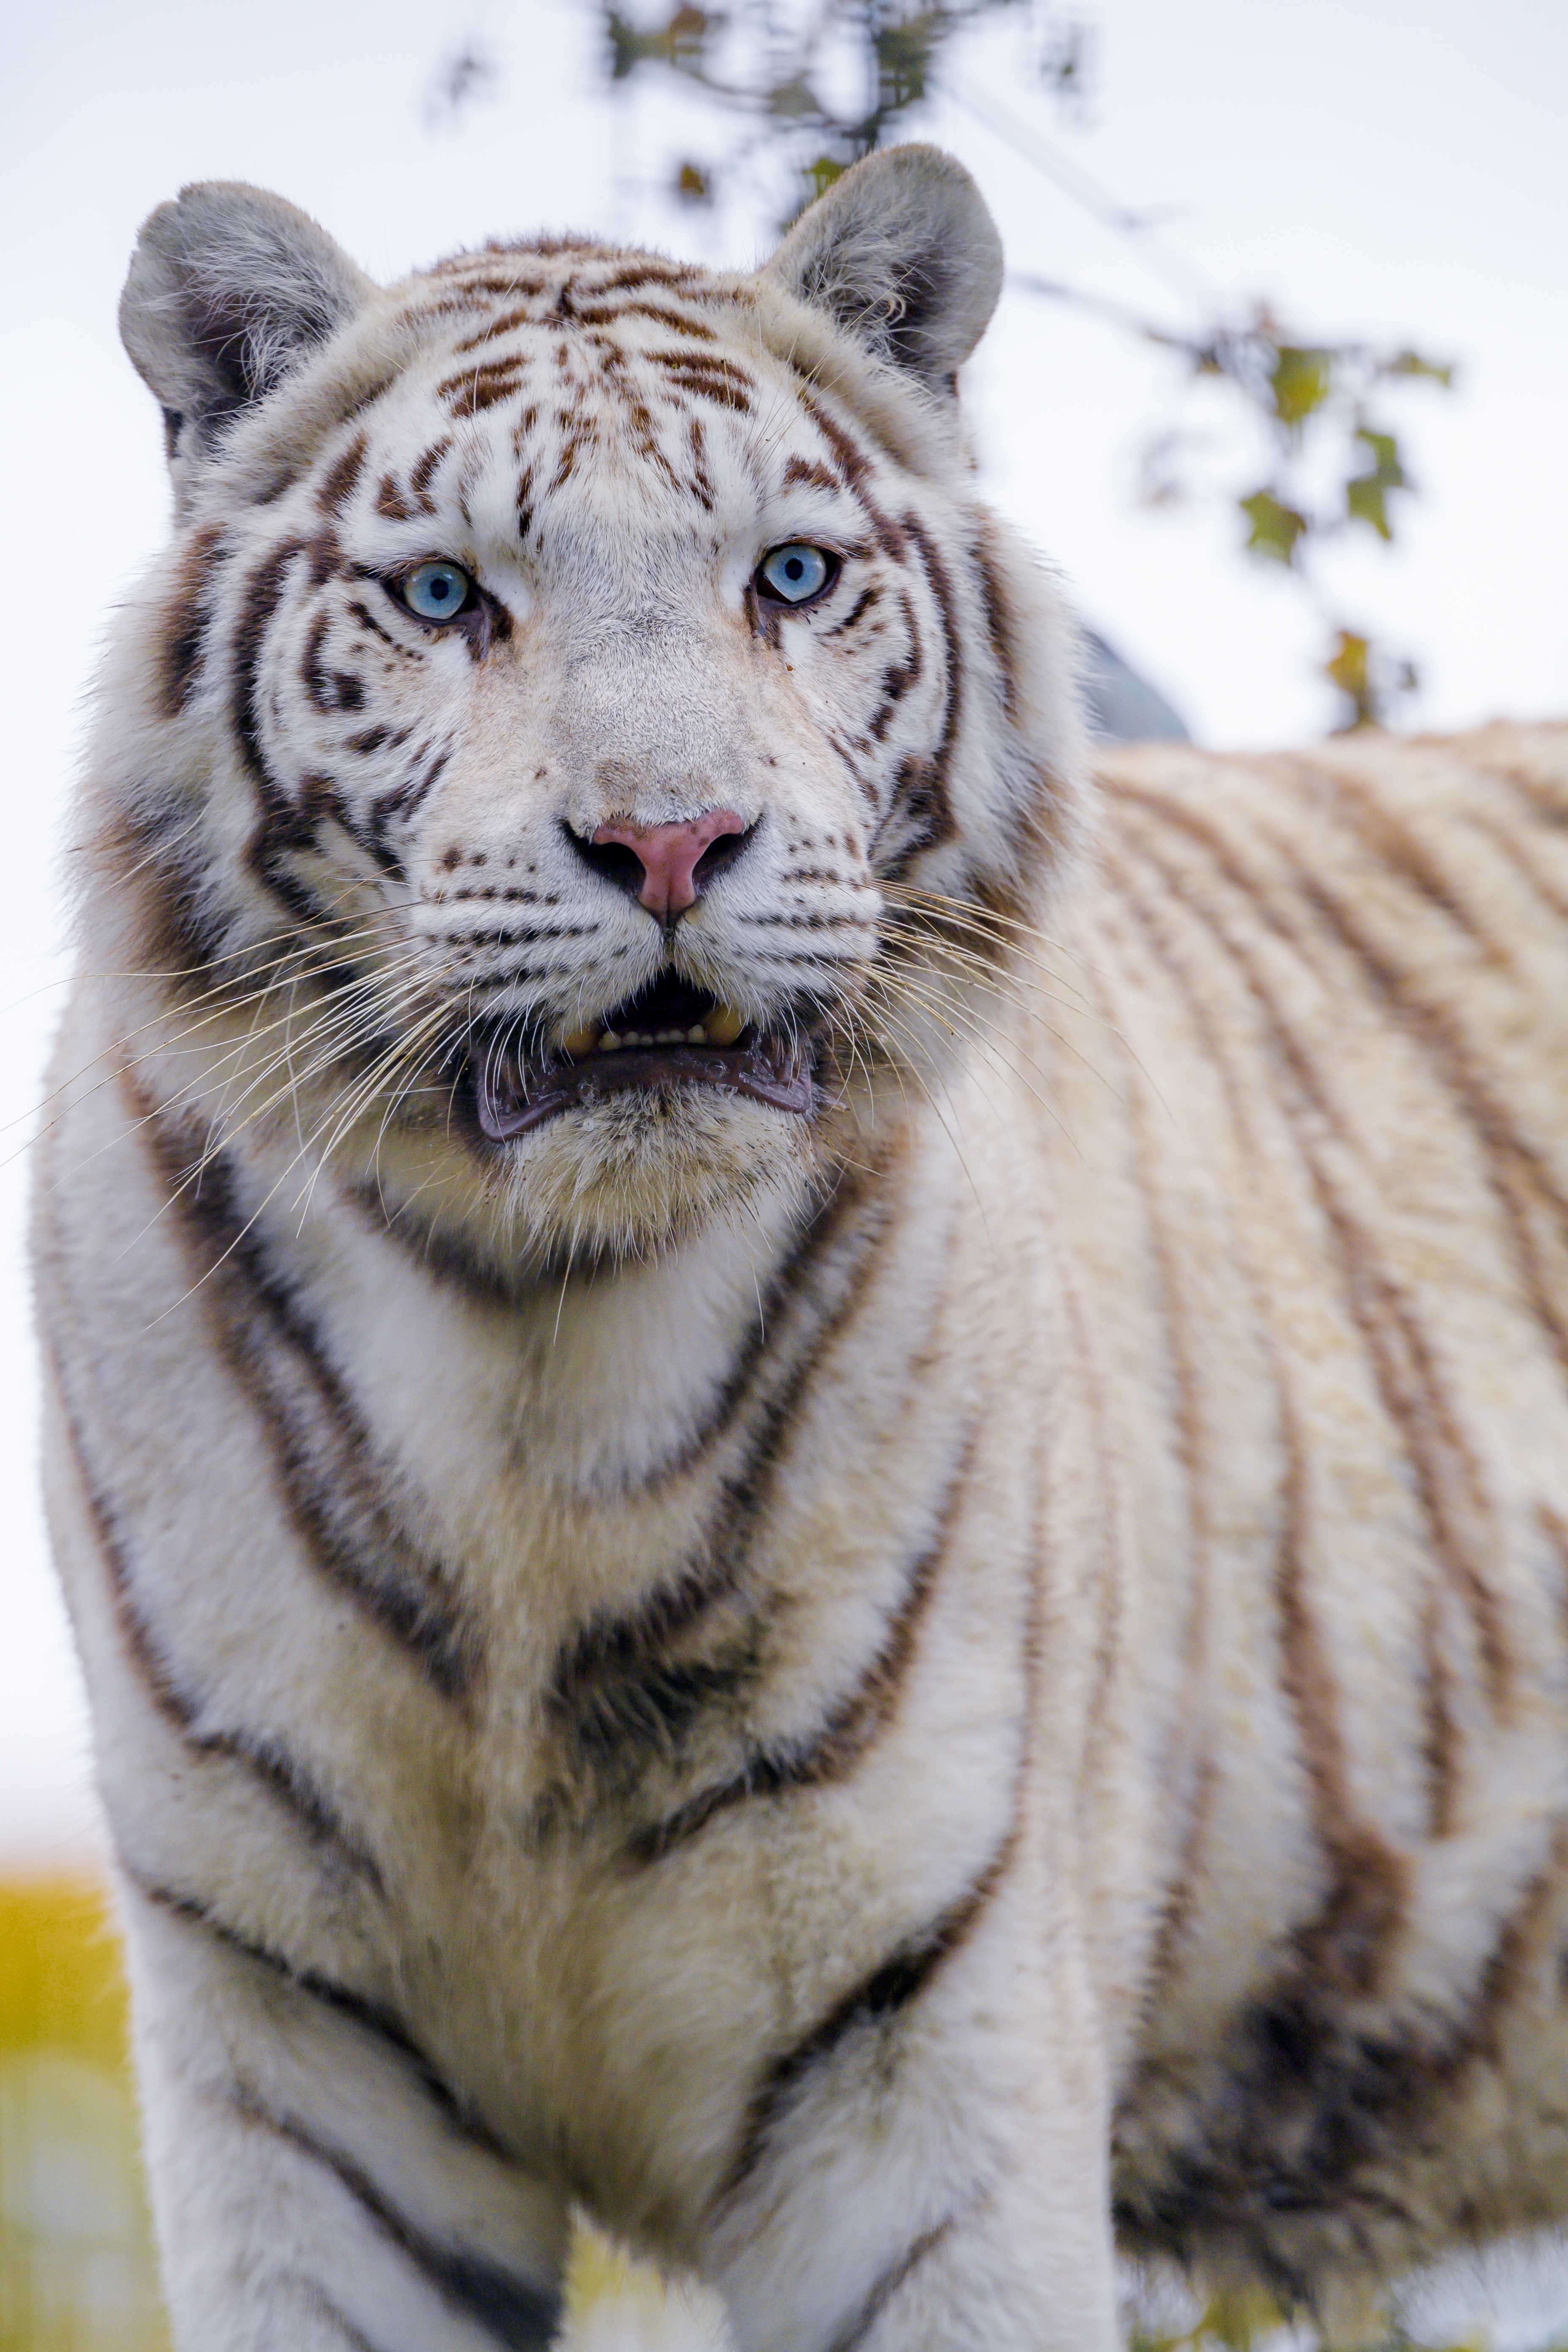 102232 download wallpaper Animals, White Tiger, Tiger, Predator, Big Cat, Wild screensavers and pictures for free